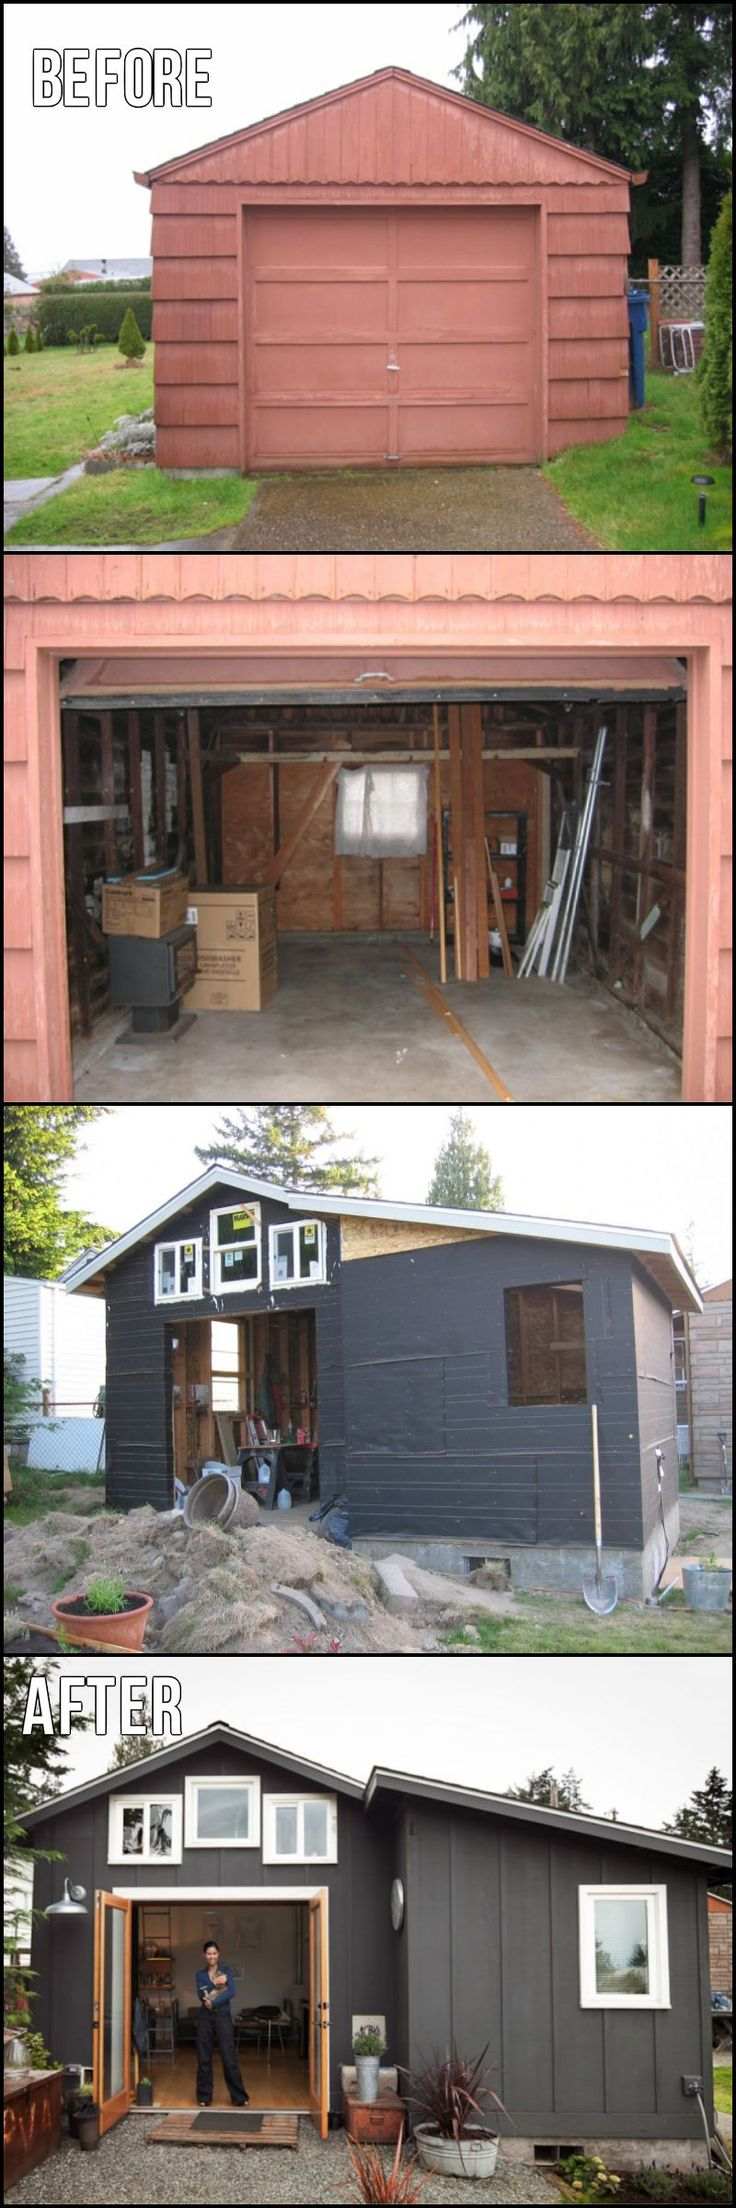 Michelle de la Vega is a visual artist, designer, welder.  Here is her conversion of an old, disused garage into a 23 m2 (250 sq ft) mini-home:  http://architecture.ideas2live4.com/2015/08/09/garage-transformation/  Do you have other ideas on how to use a small garage?